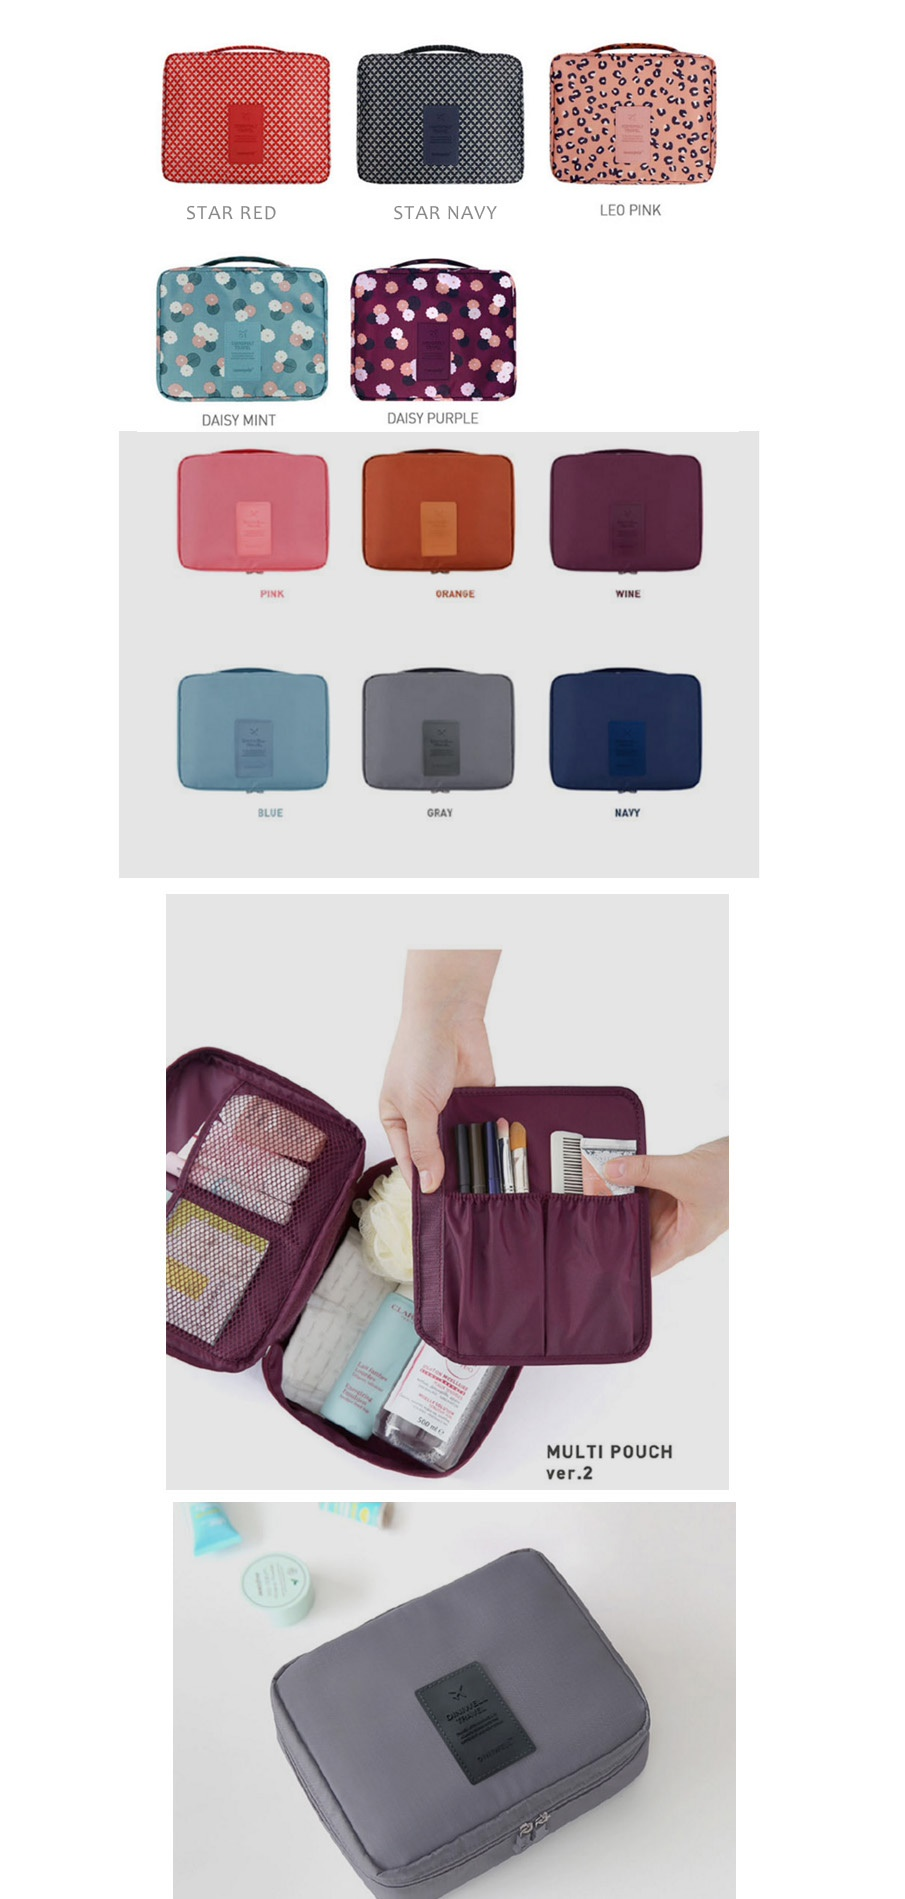 Multi Pouch Travelling Travel Bag Bags Luggage